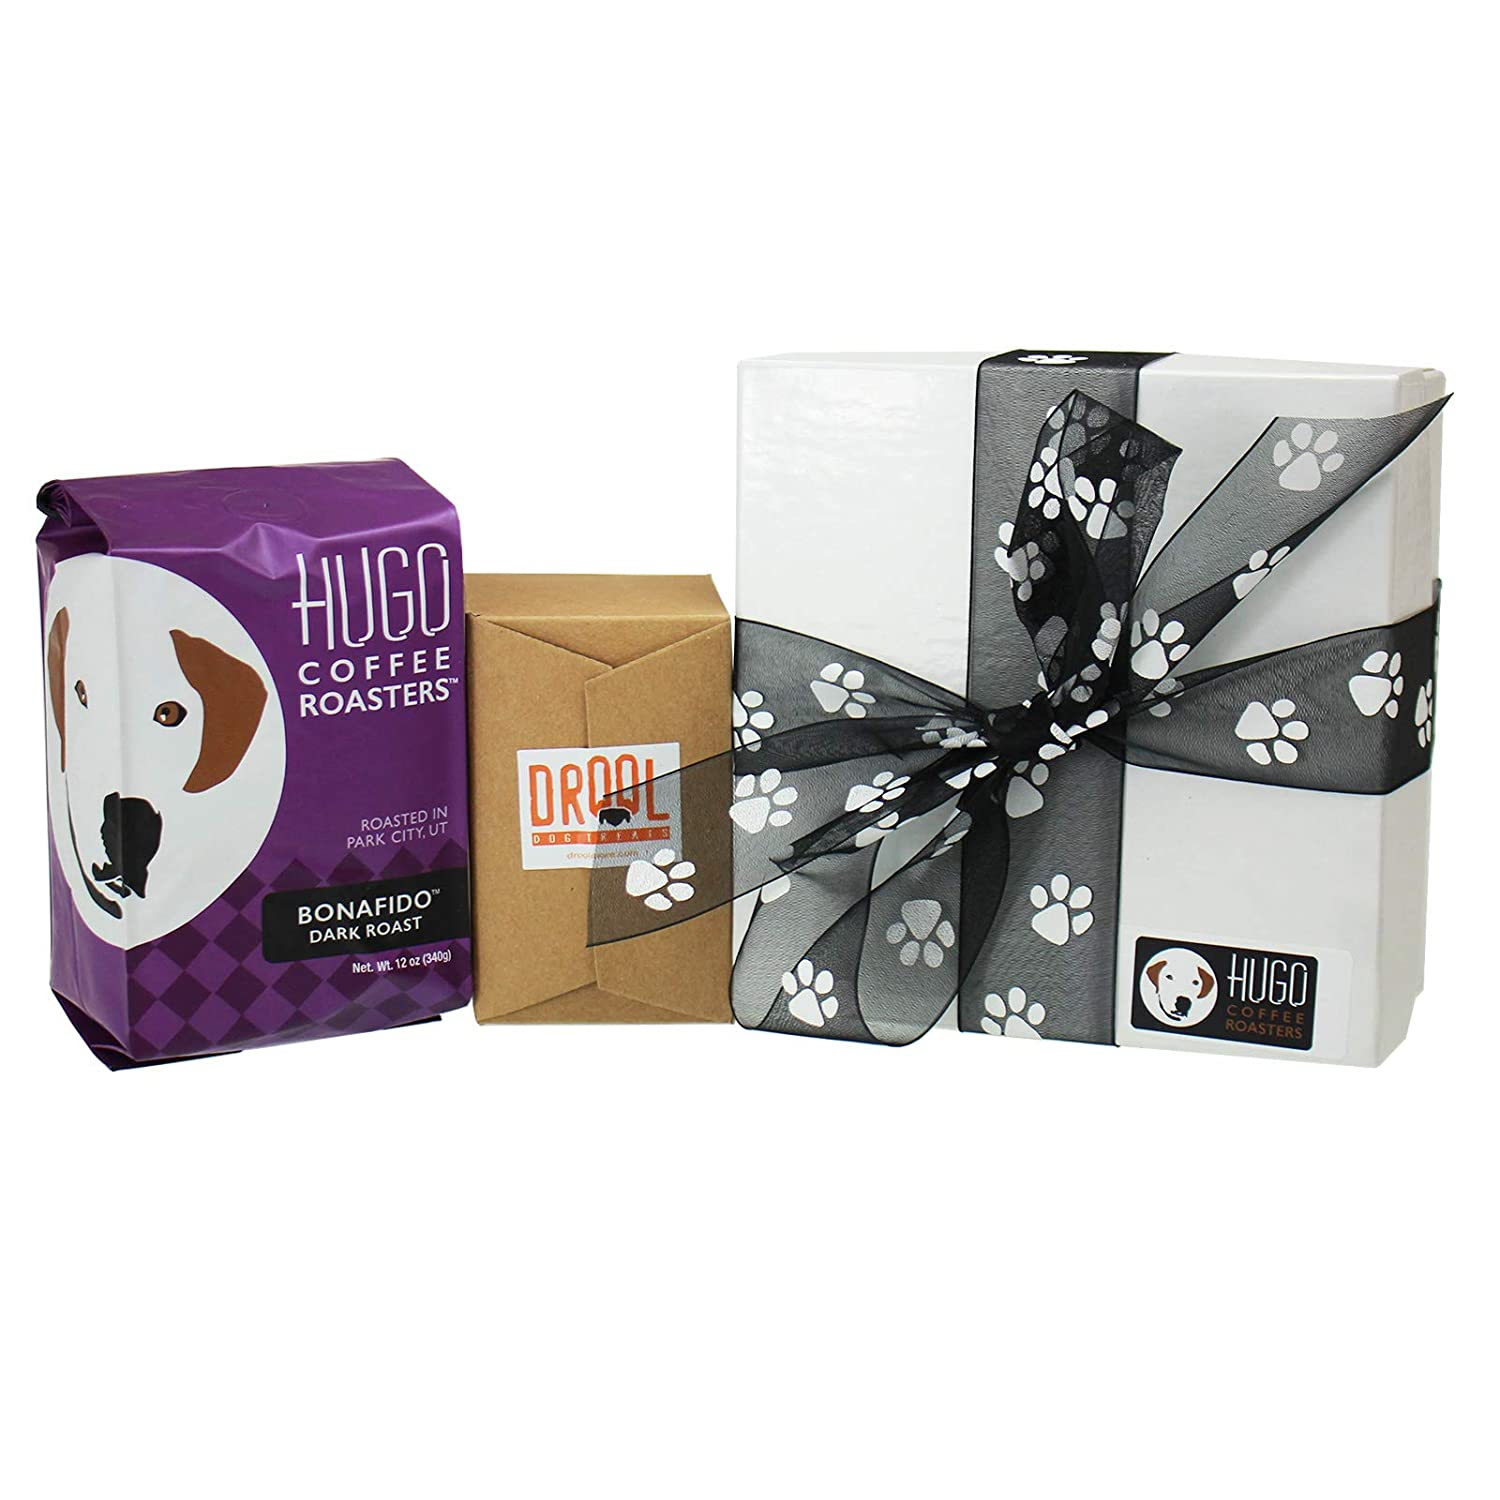 Hugo Coffee – Dog Treat Coffee Gift Set – Dog Lover Gifts for Women, Men, Their Canine Companions, Includes 12 Ounces of Gourmet Coffee Homemade Dog Treats